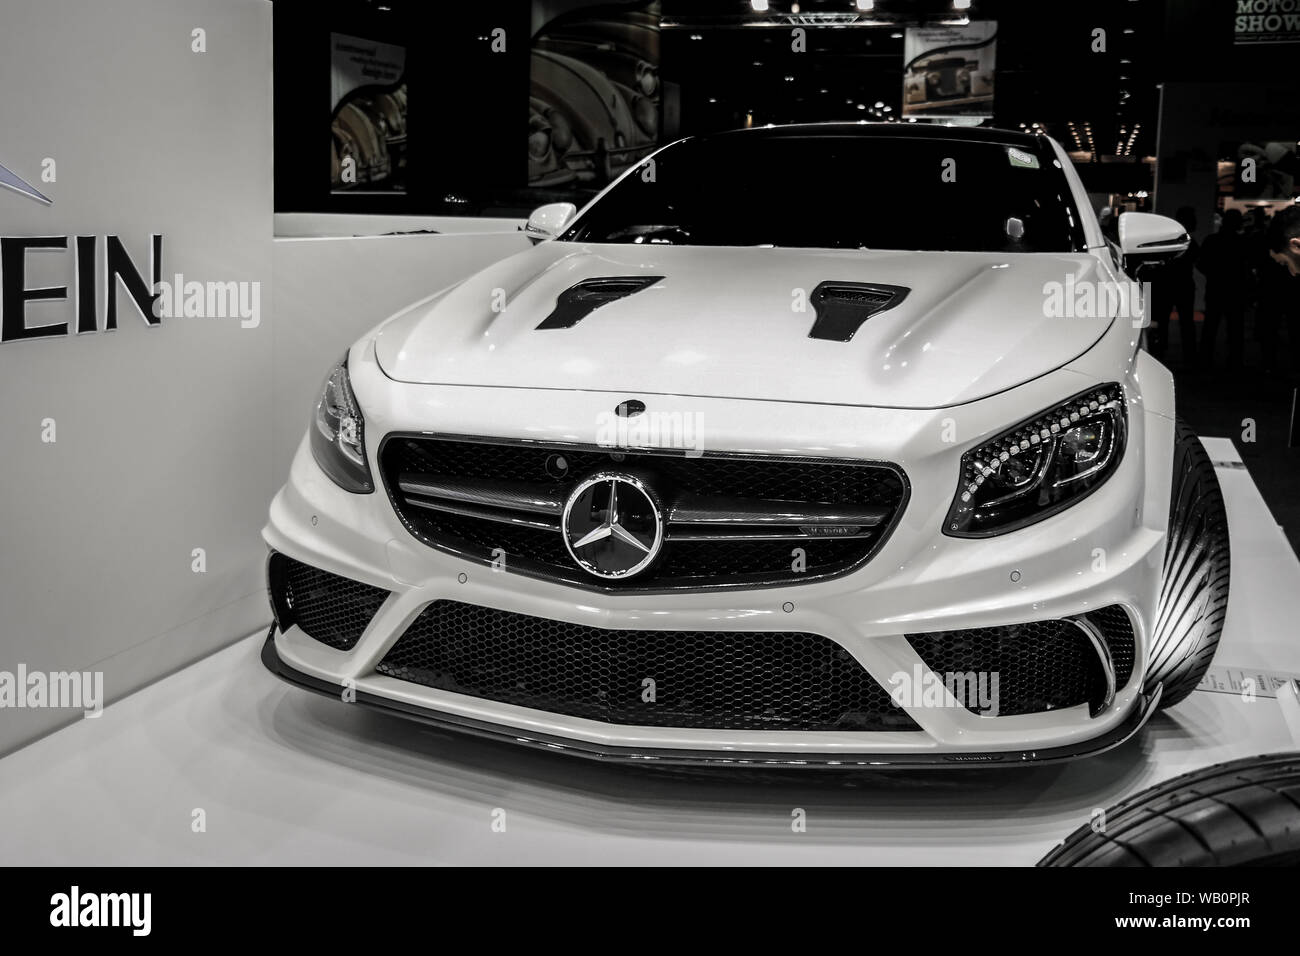 Mercedes Benz Epic Amg Modified Car Mercedes Displaying Their Cars In A Motor Show In Dubai Stock Photo Alamy